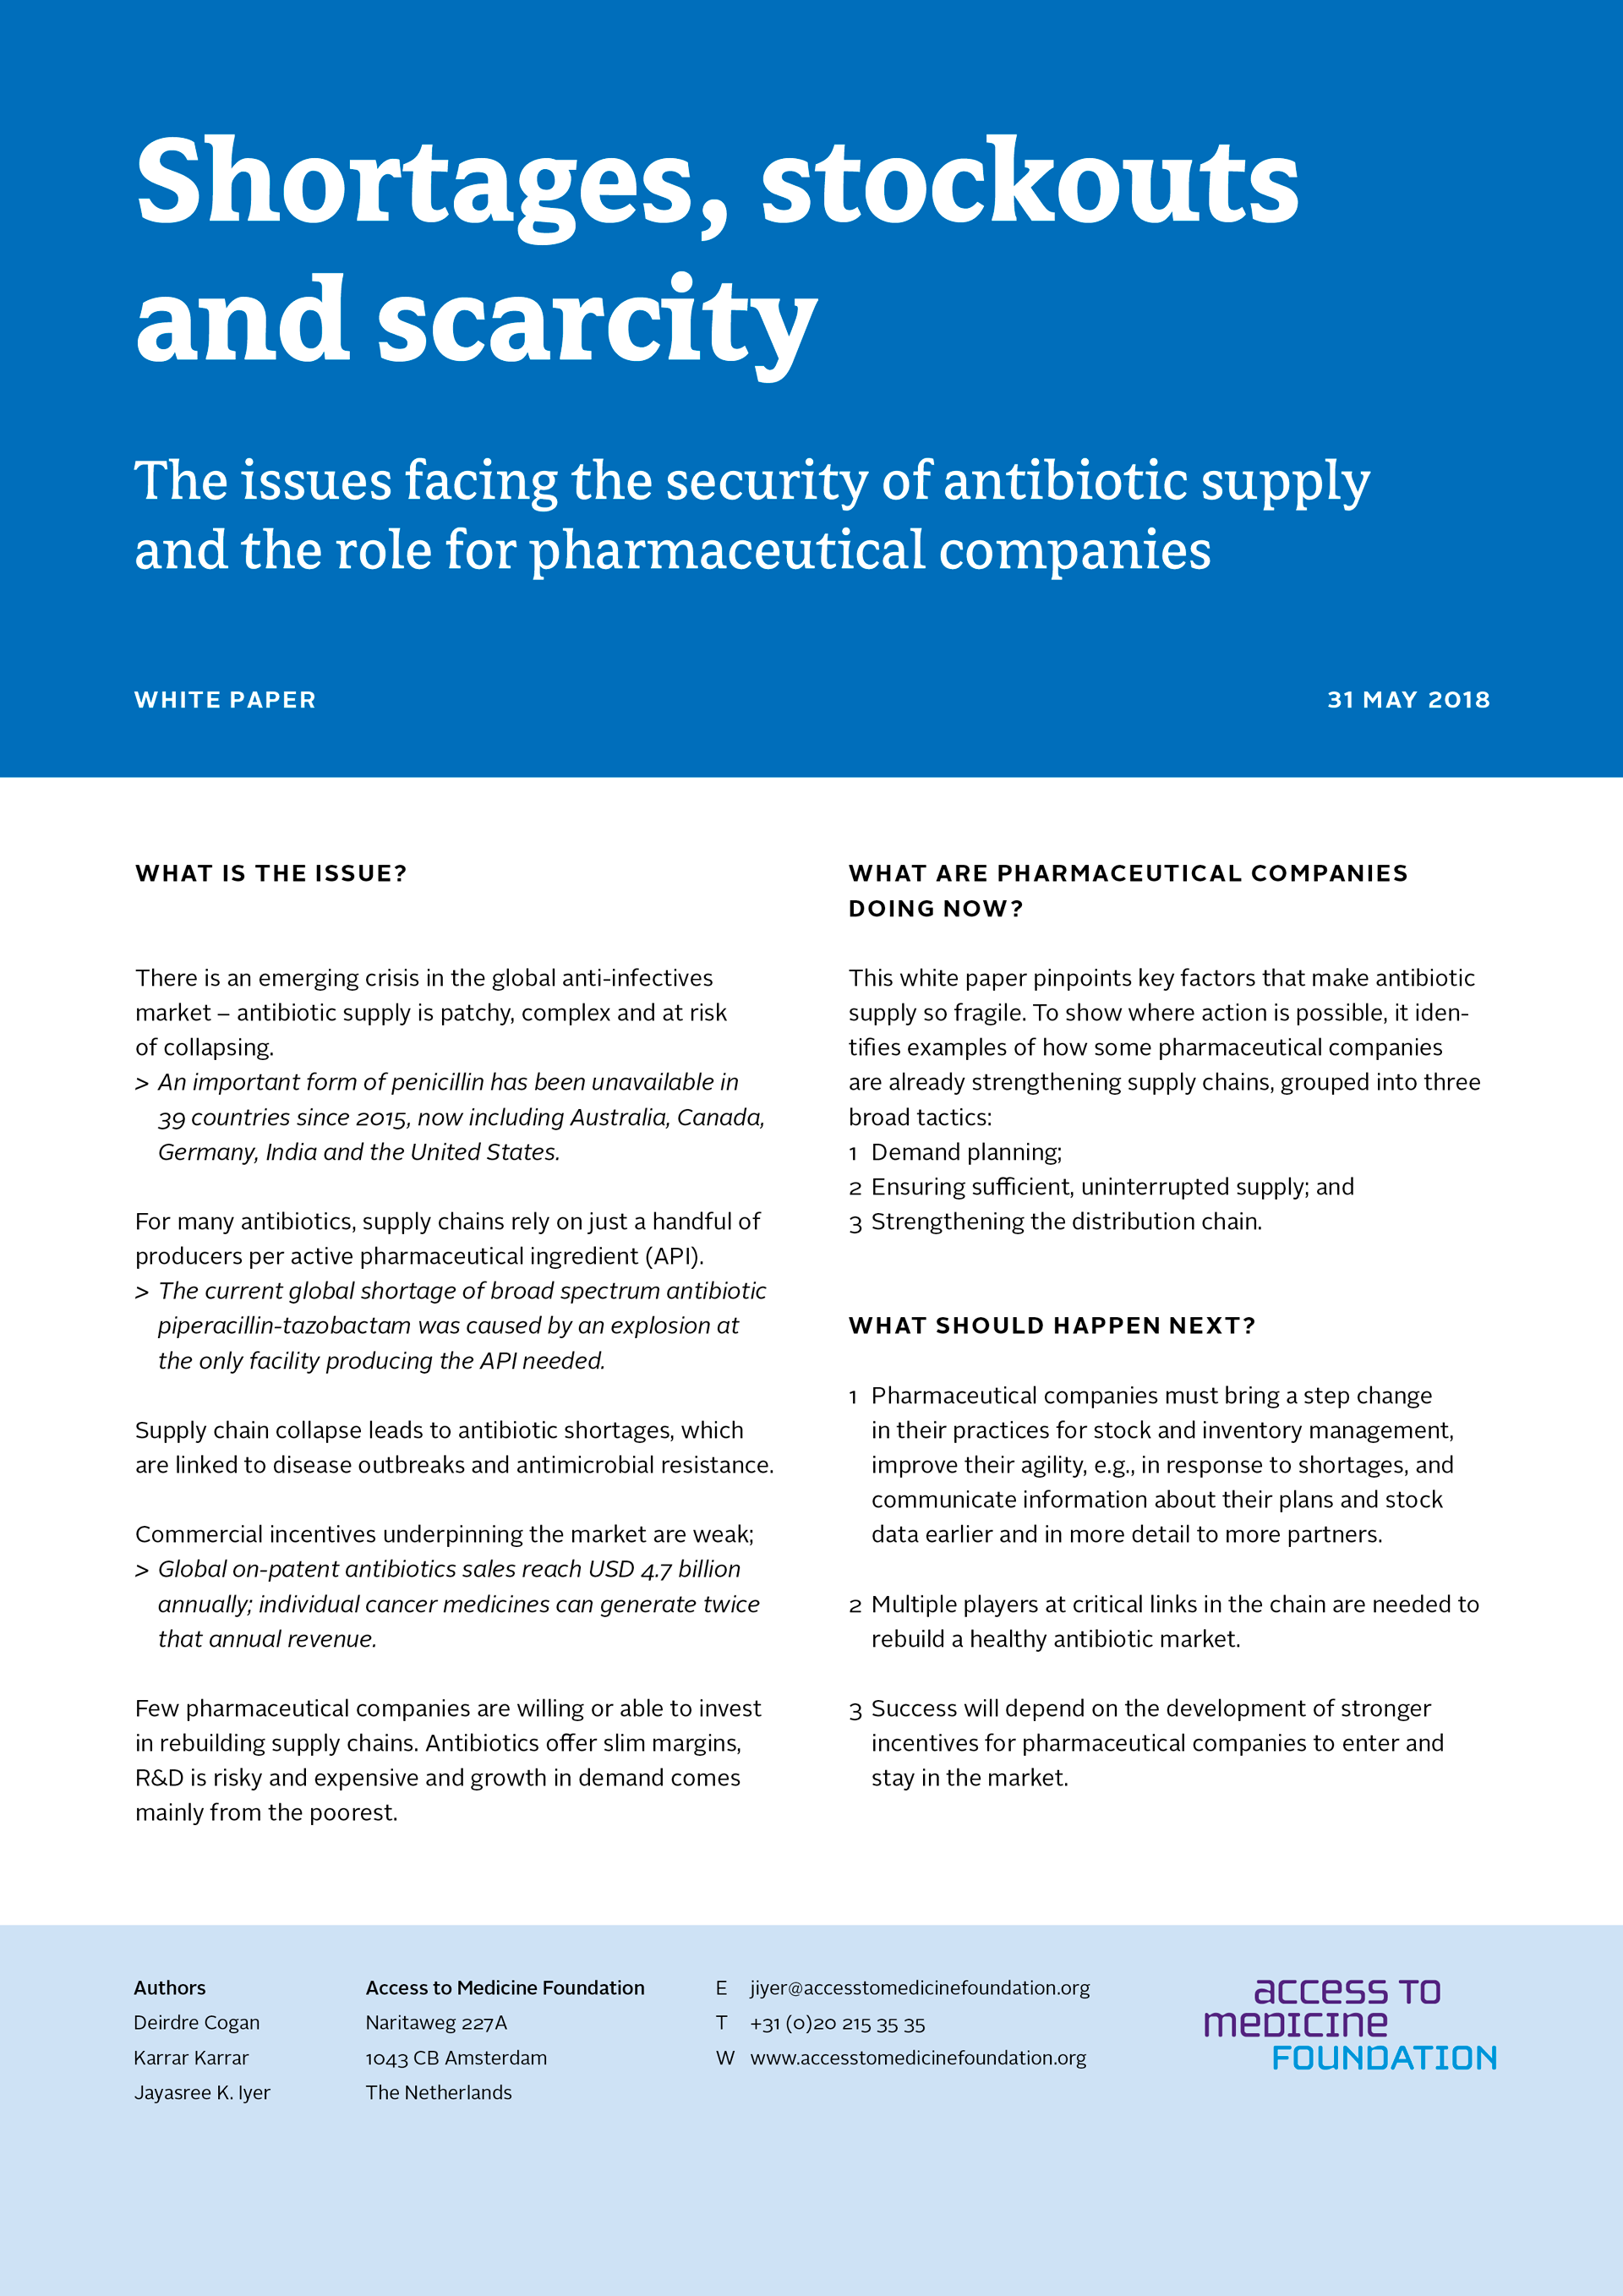 Shortages, Stockouts And Scarcity: The Issues Facing The Security Of Antibiotic Supply And The Role For Pharmaceutical Companies